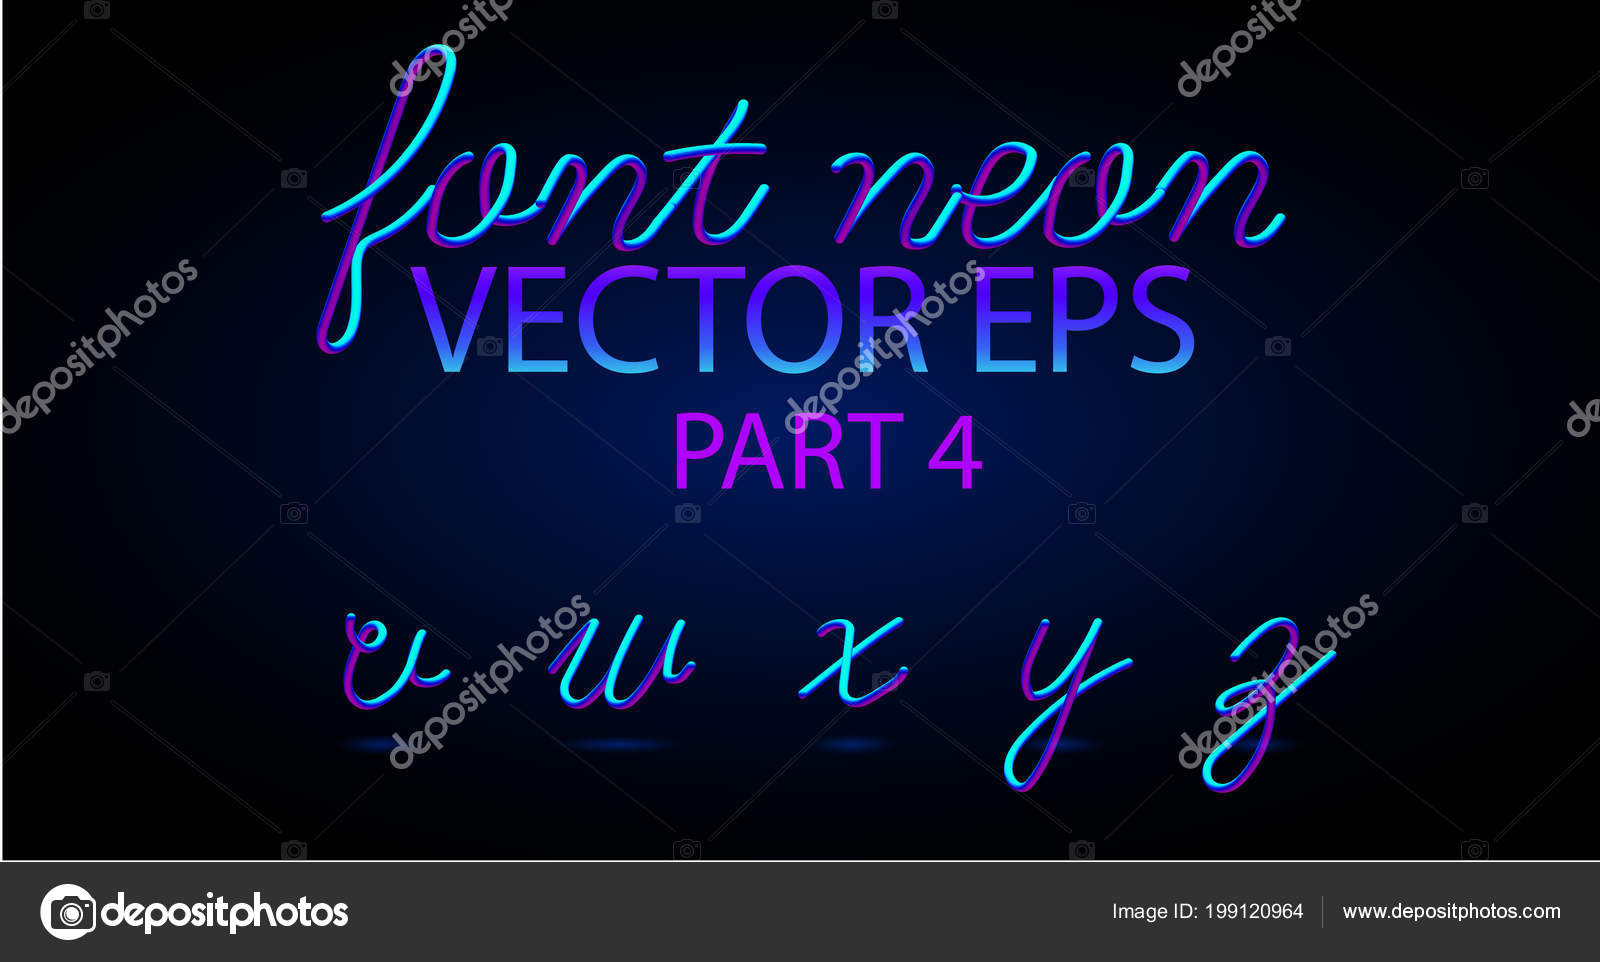 neon 3d typeset with rounded shapes font set of painted letters matte liquid colors